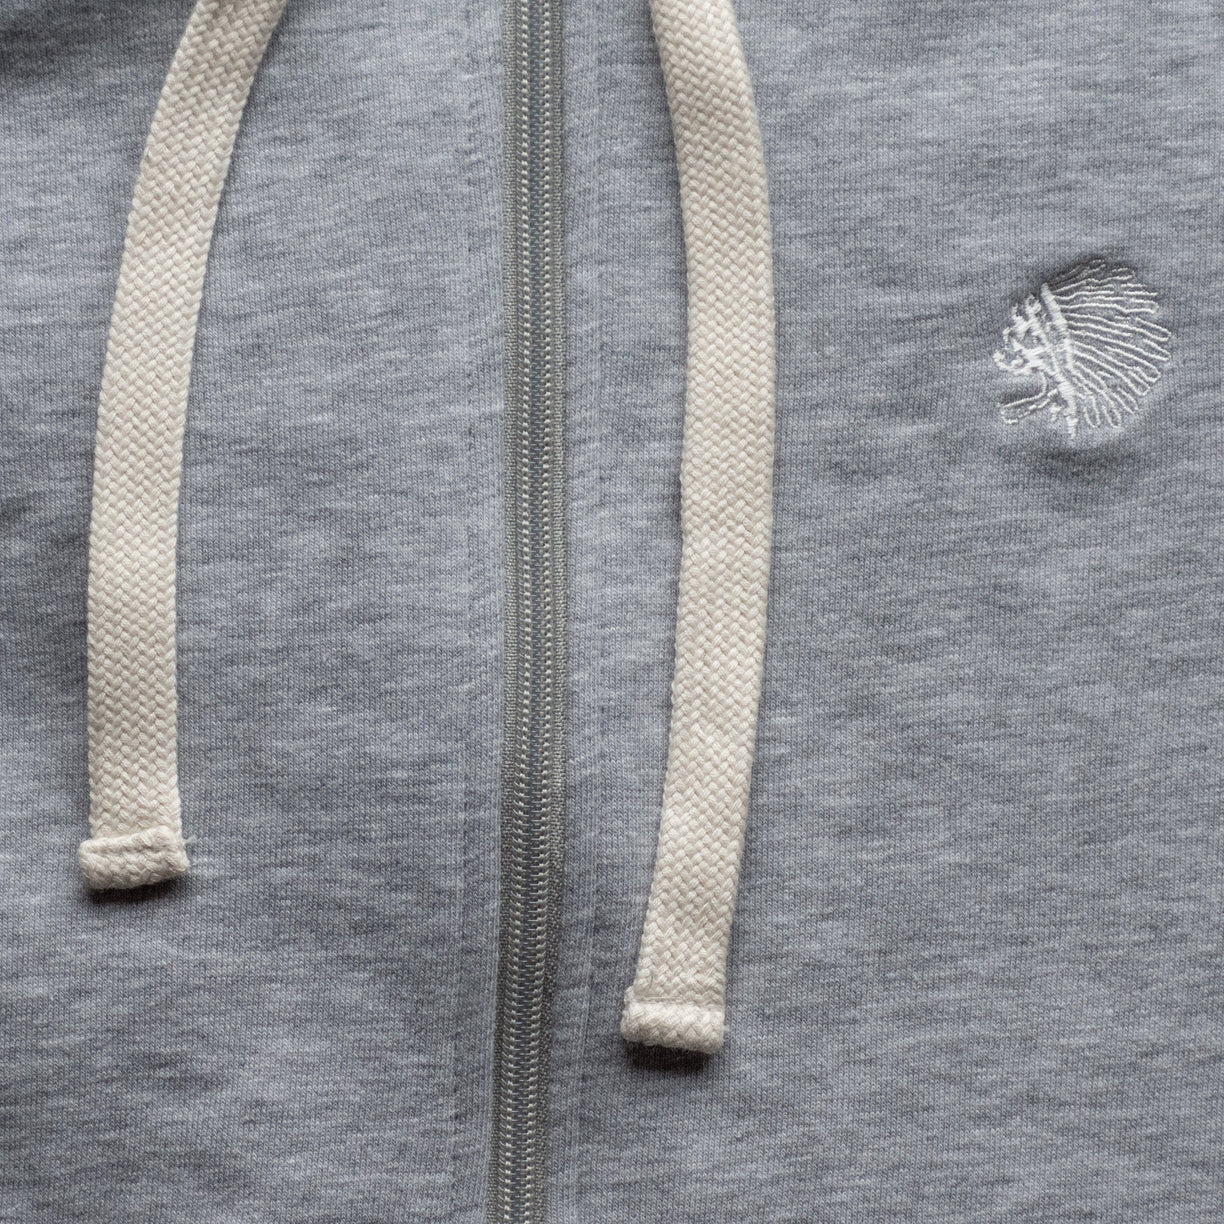 ZIP SWEATSHIRT - GRAY